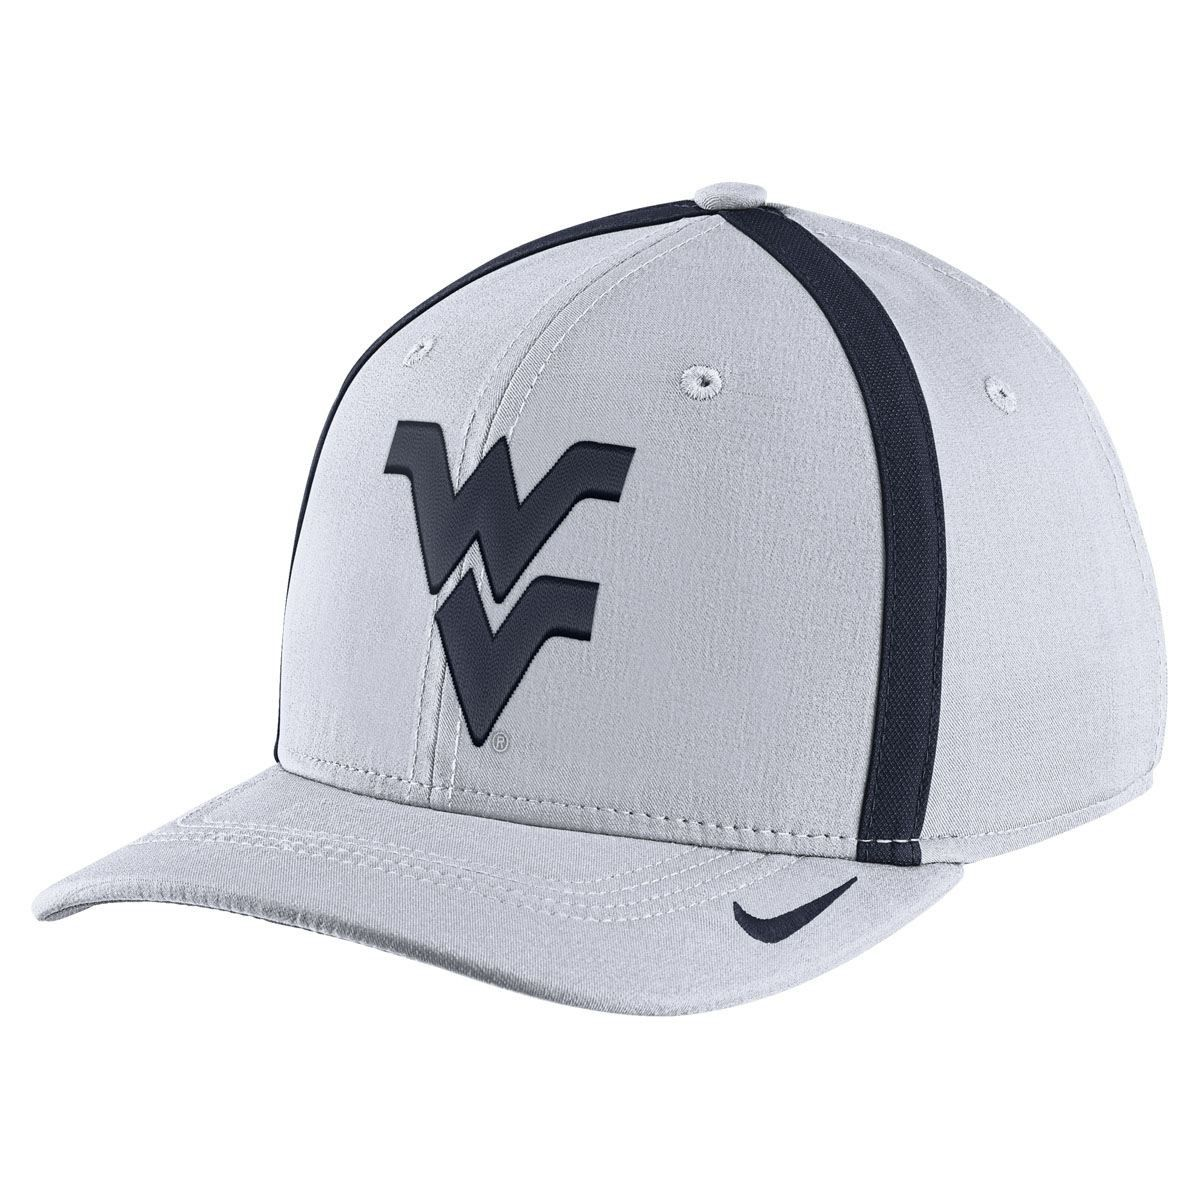 ed7181a9090 Our Sideline Swoosh Flex cap is constructed in 100% Dri-FIT polyester  fabric with Nike Aerobill construction